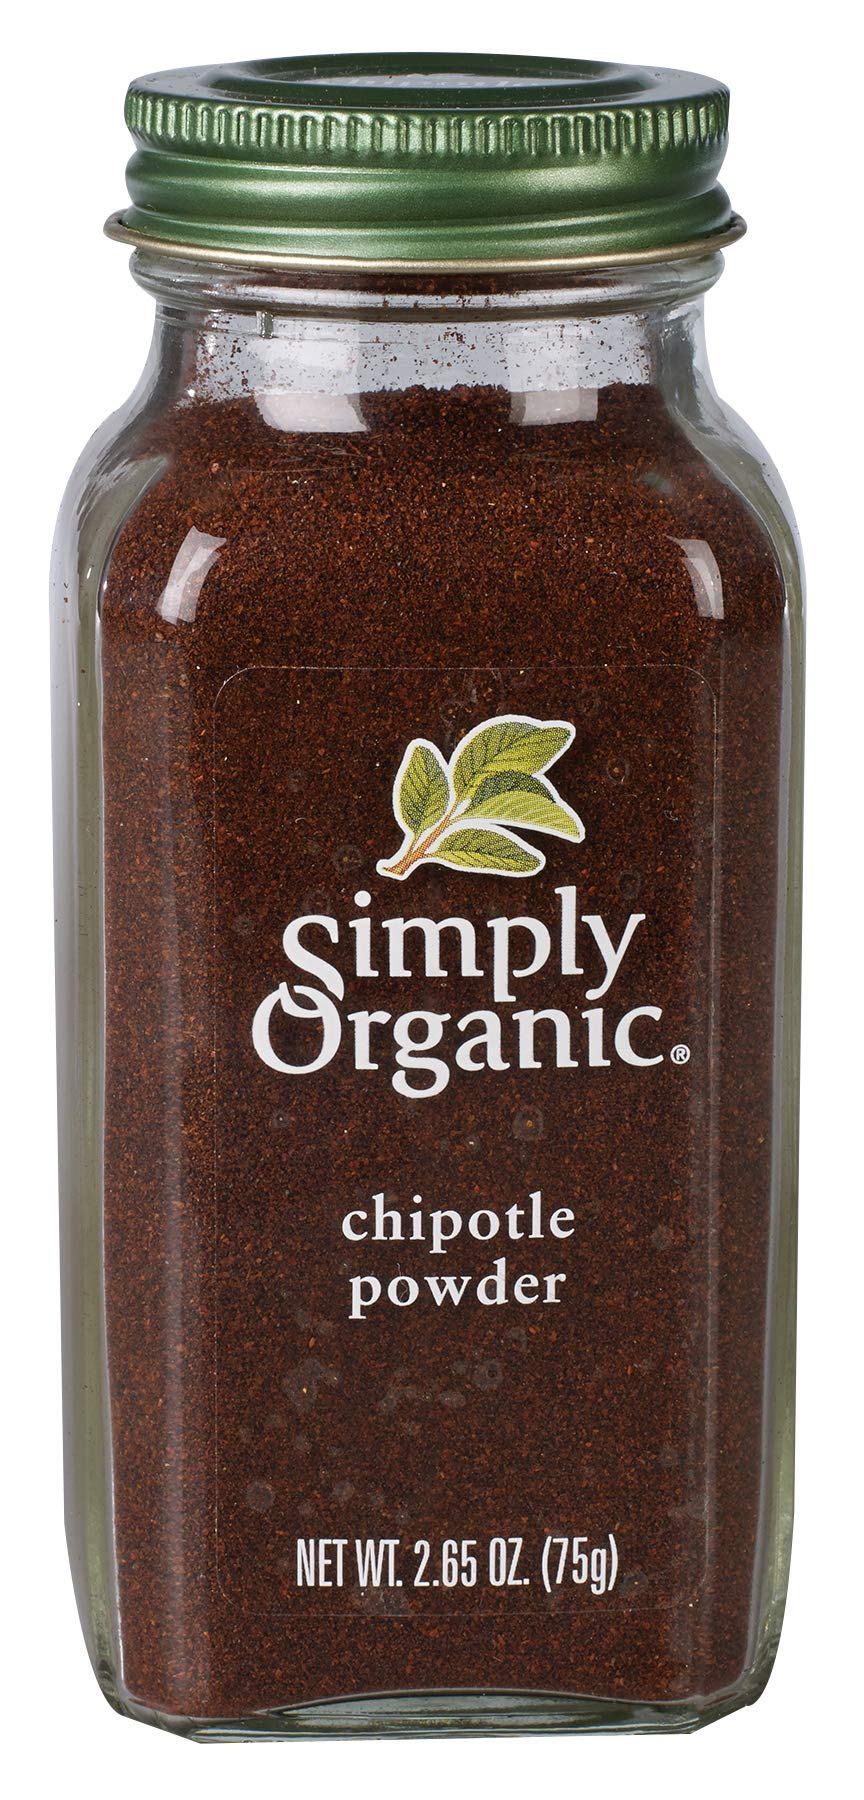 Simply Organic Chipotle Powder, 2.65 Ounce